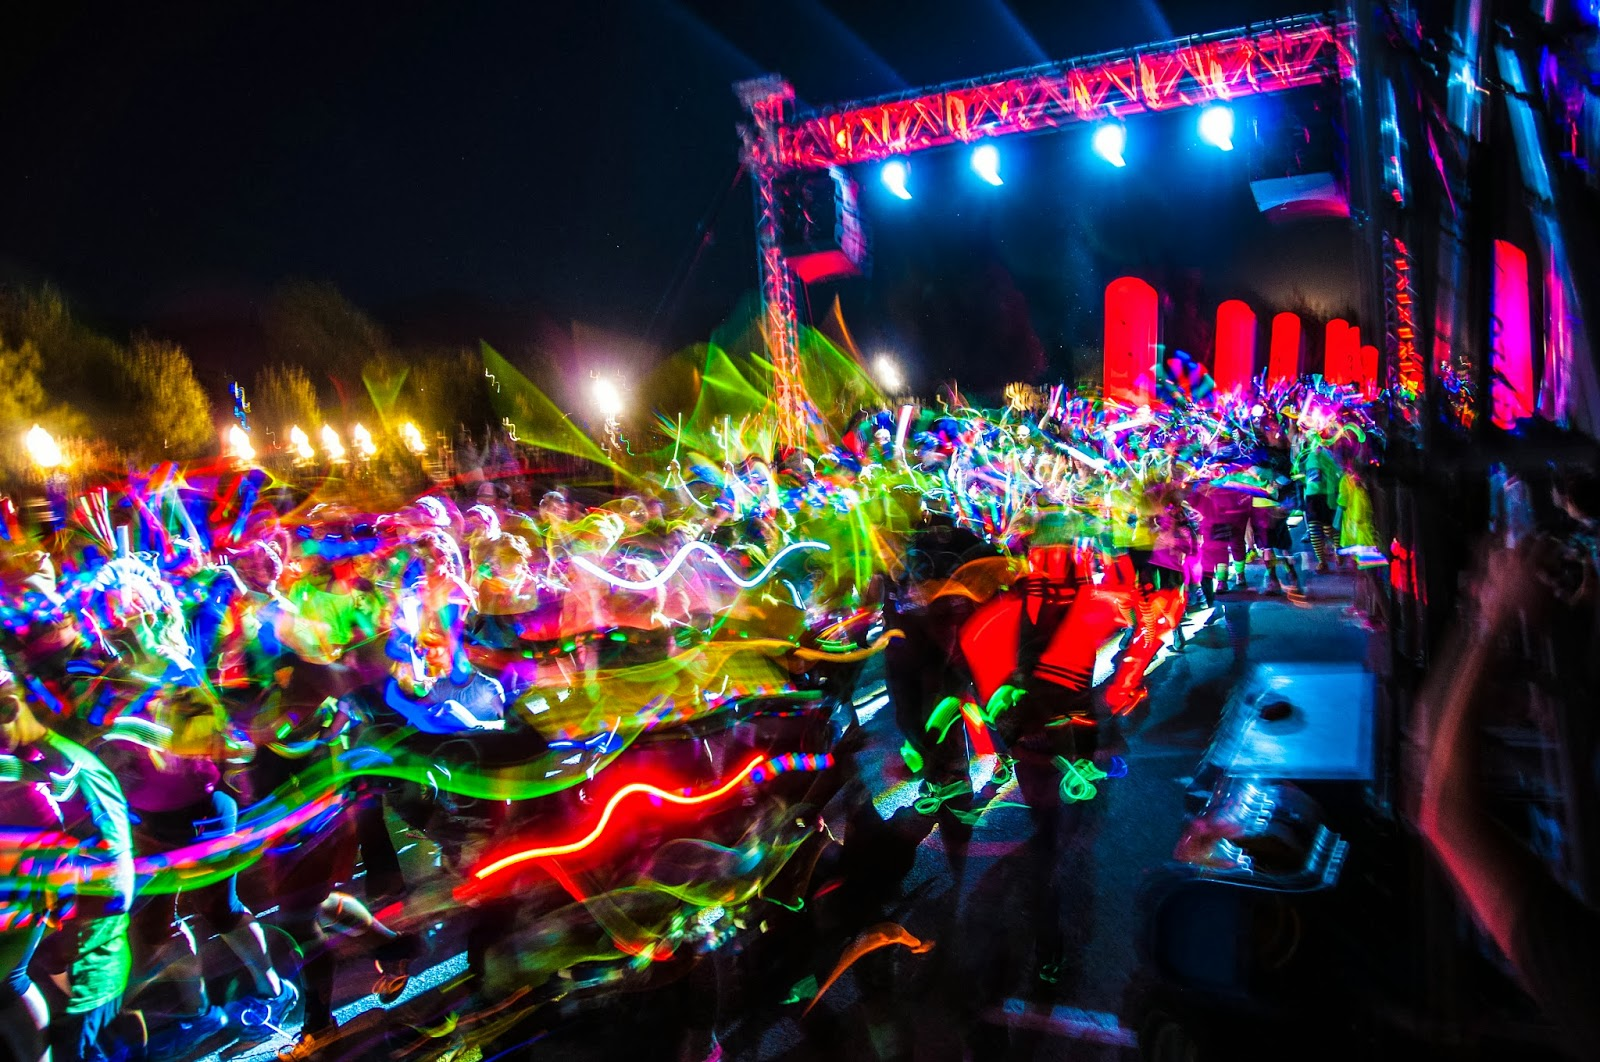 electric run, juan pablo, the bachelor, glow sticks, abc bachelor comes to utah,  juan pablo bachelor in utah,